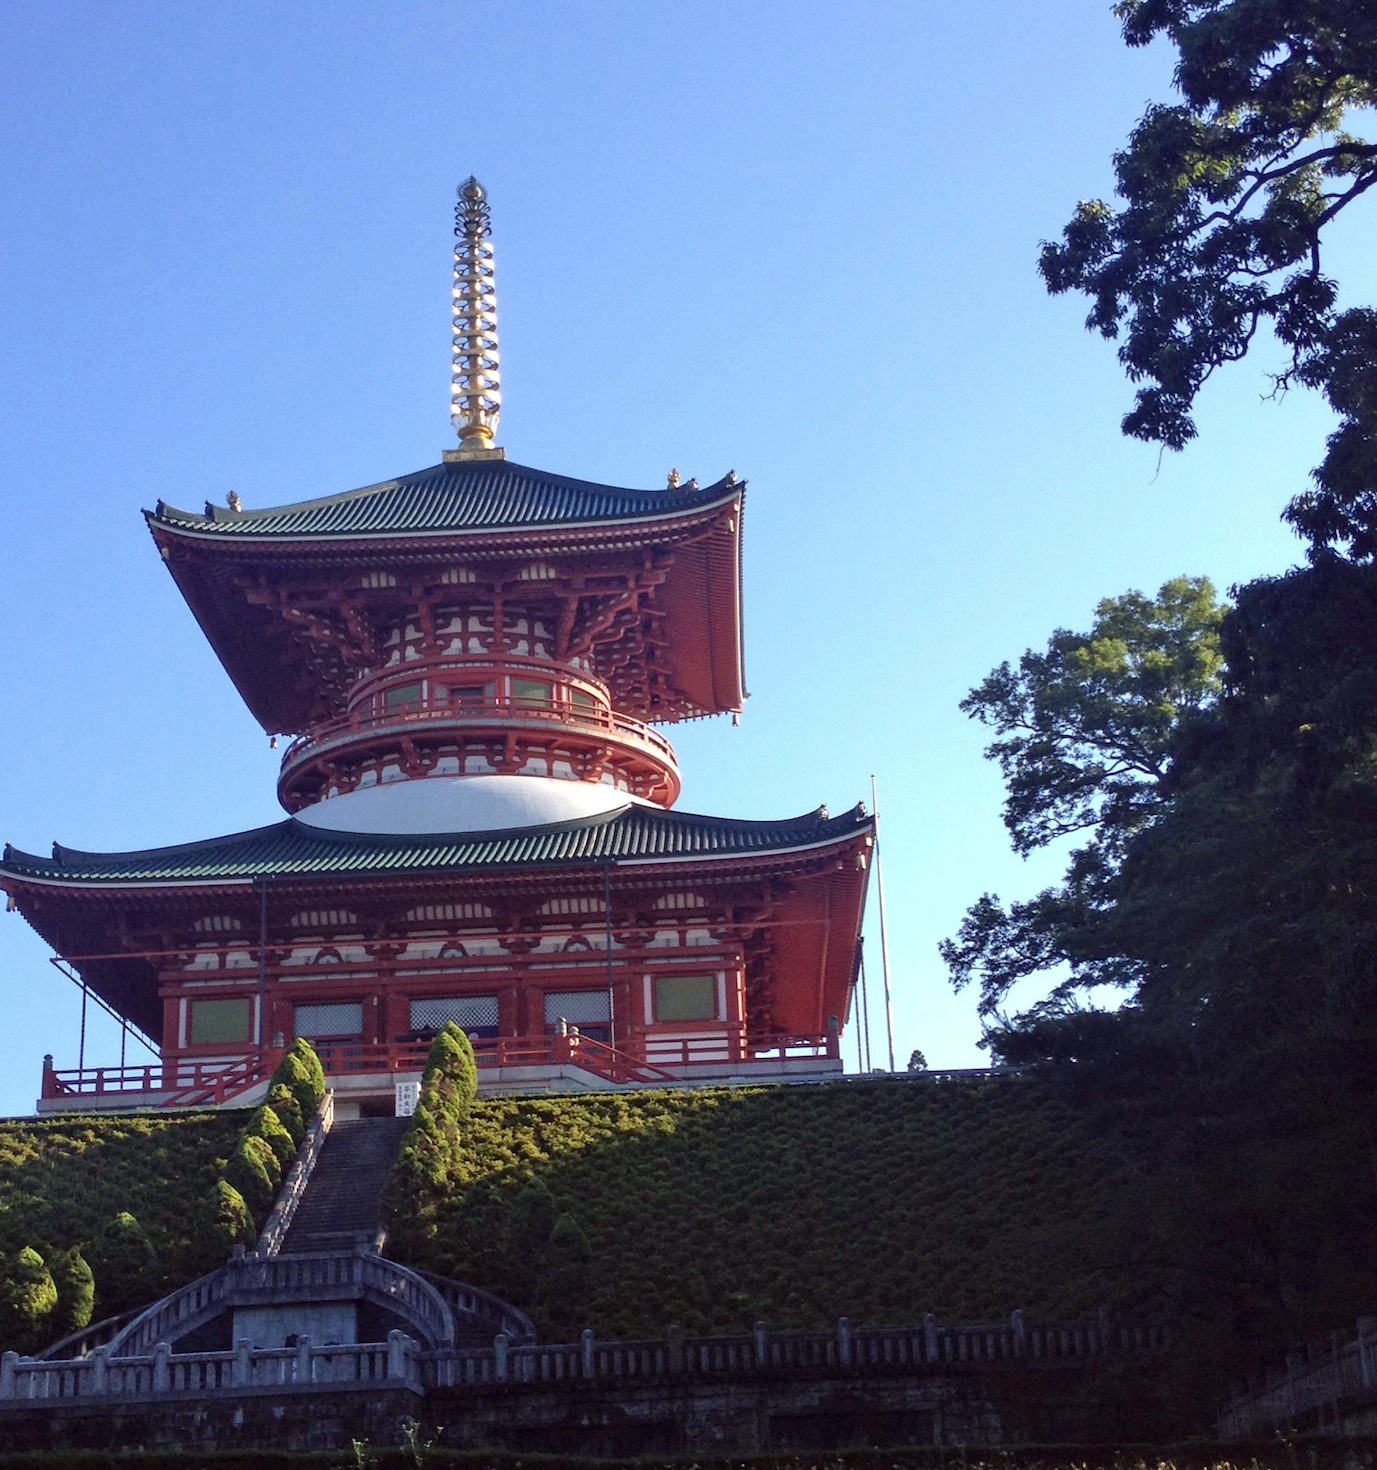 The Naritasan Temple at dawn.